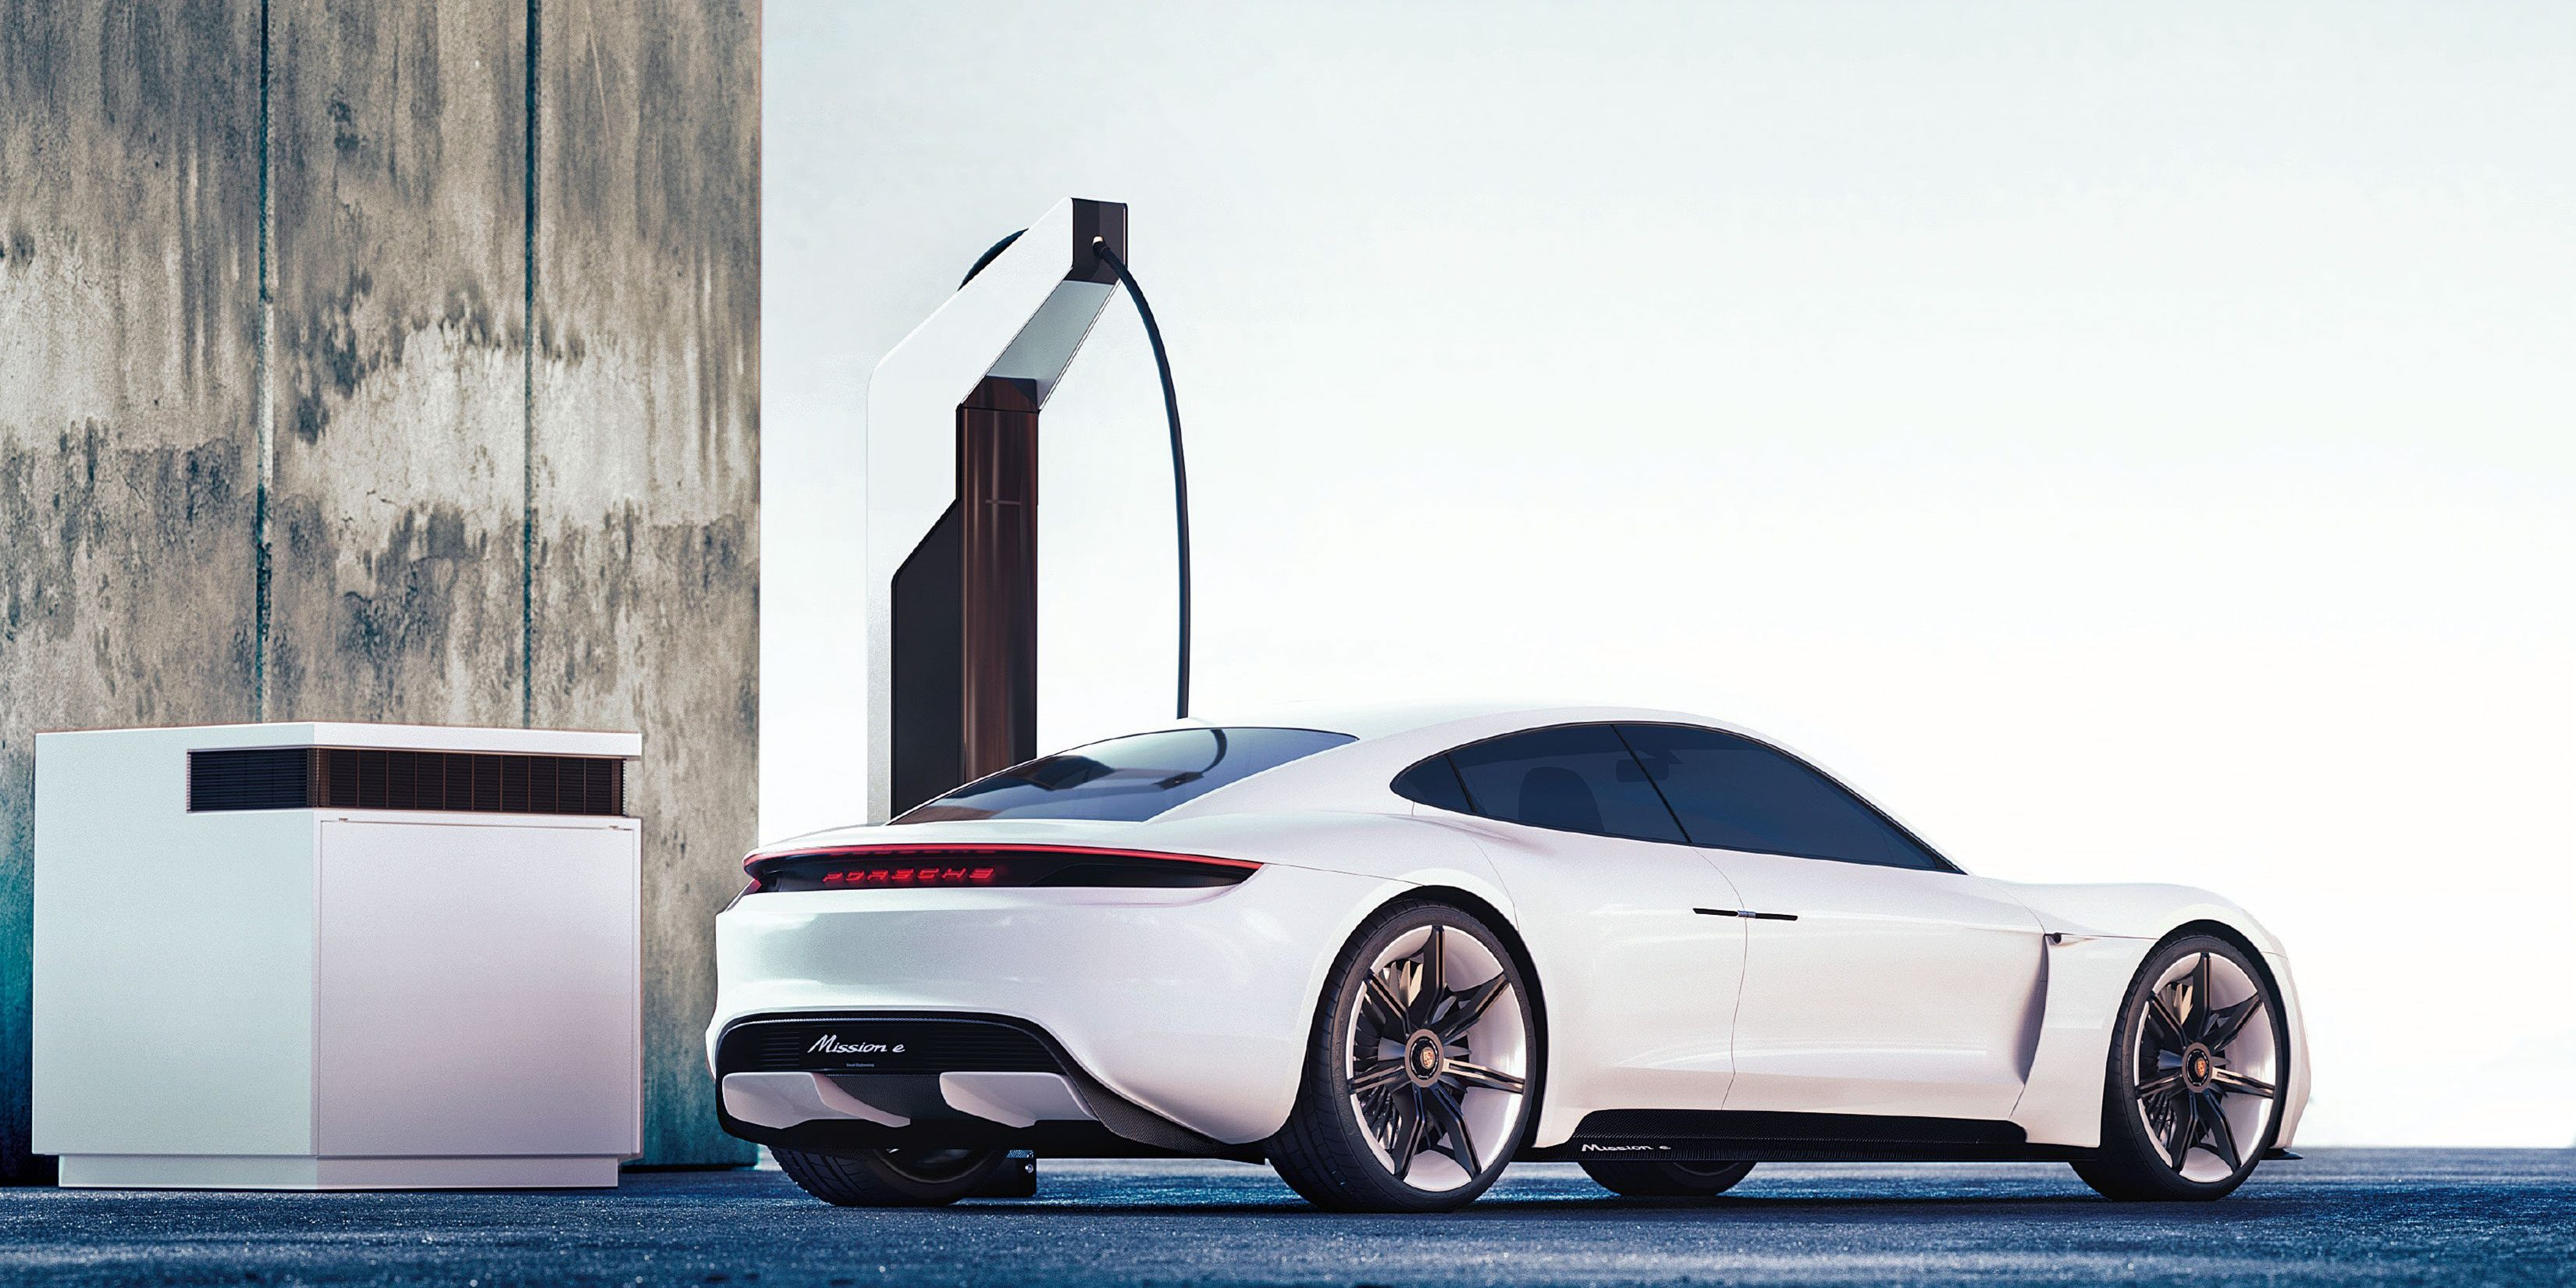 electrek.co - Fred Lambert - Porsche unveils its plan for electric vehicle fast-charging stations: Electric pit stop